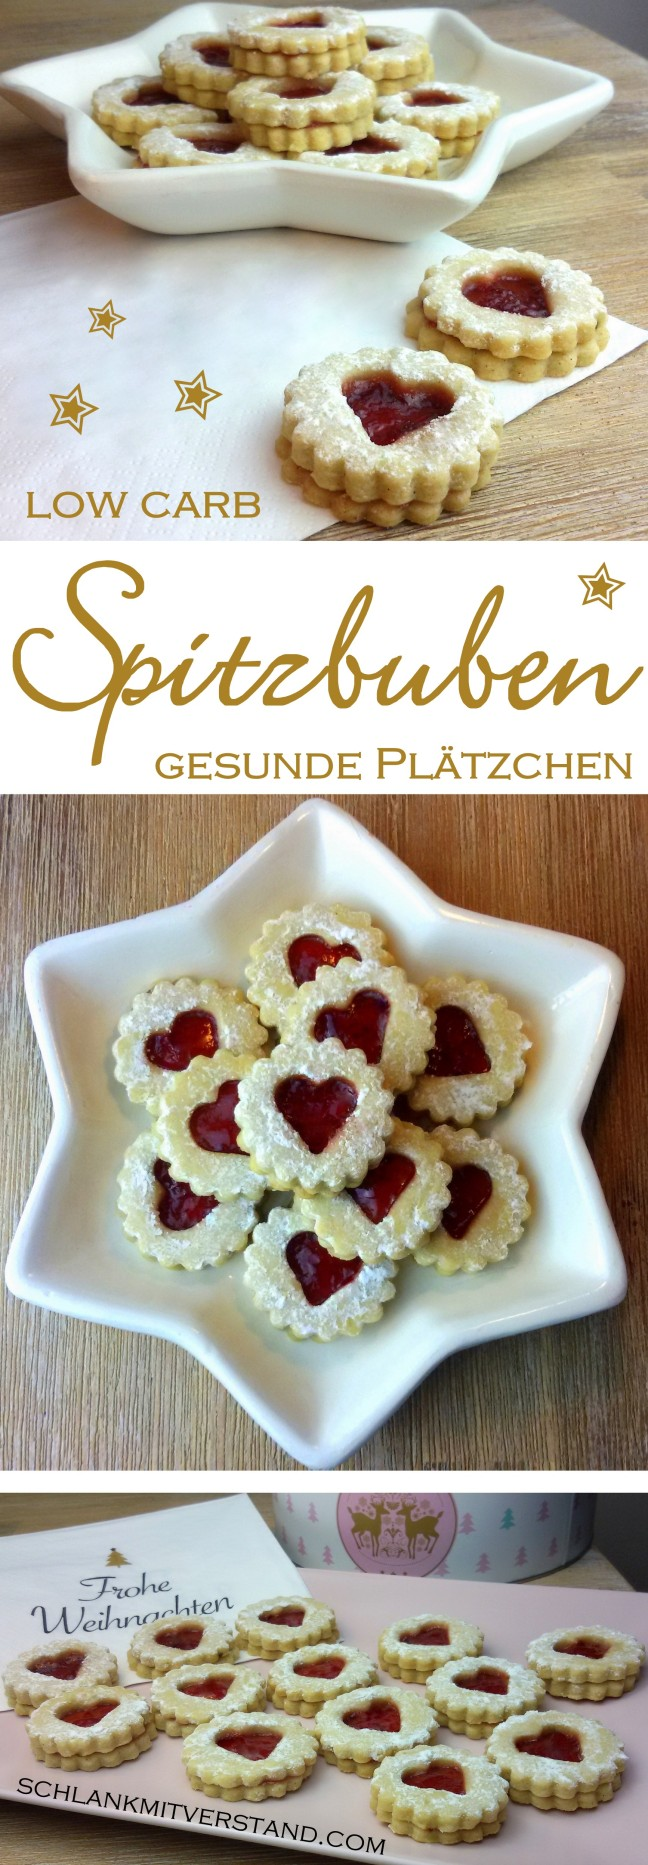 low-carb-spitzbuben1